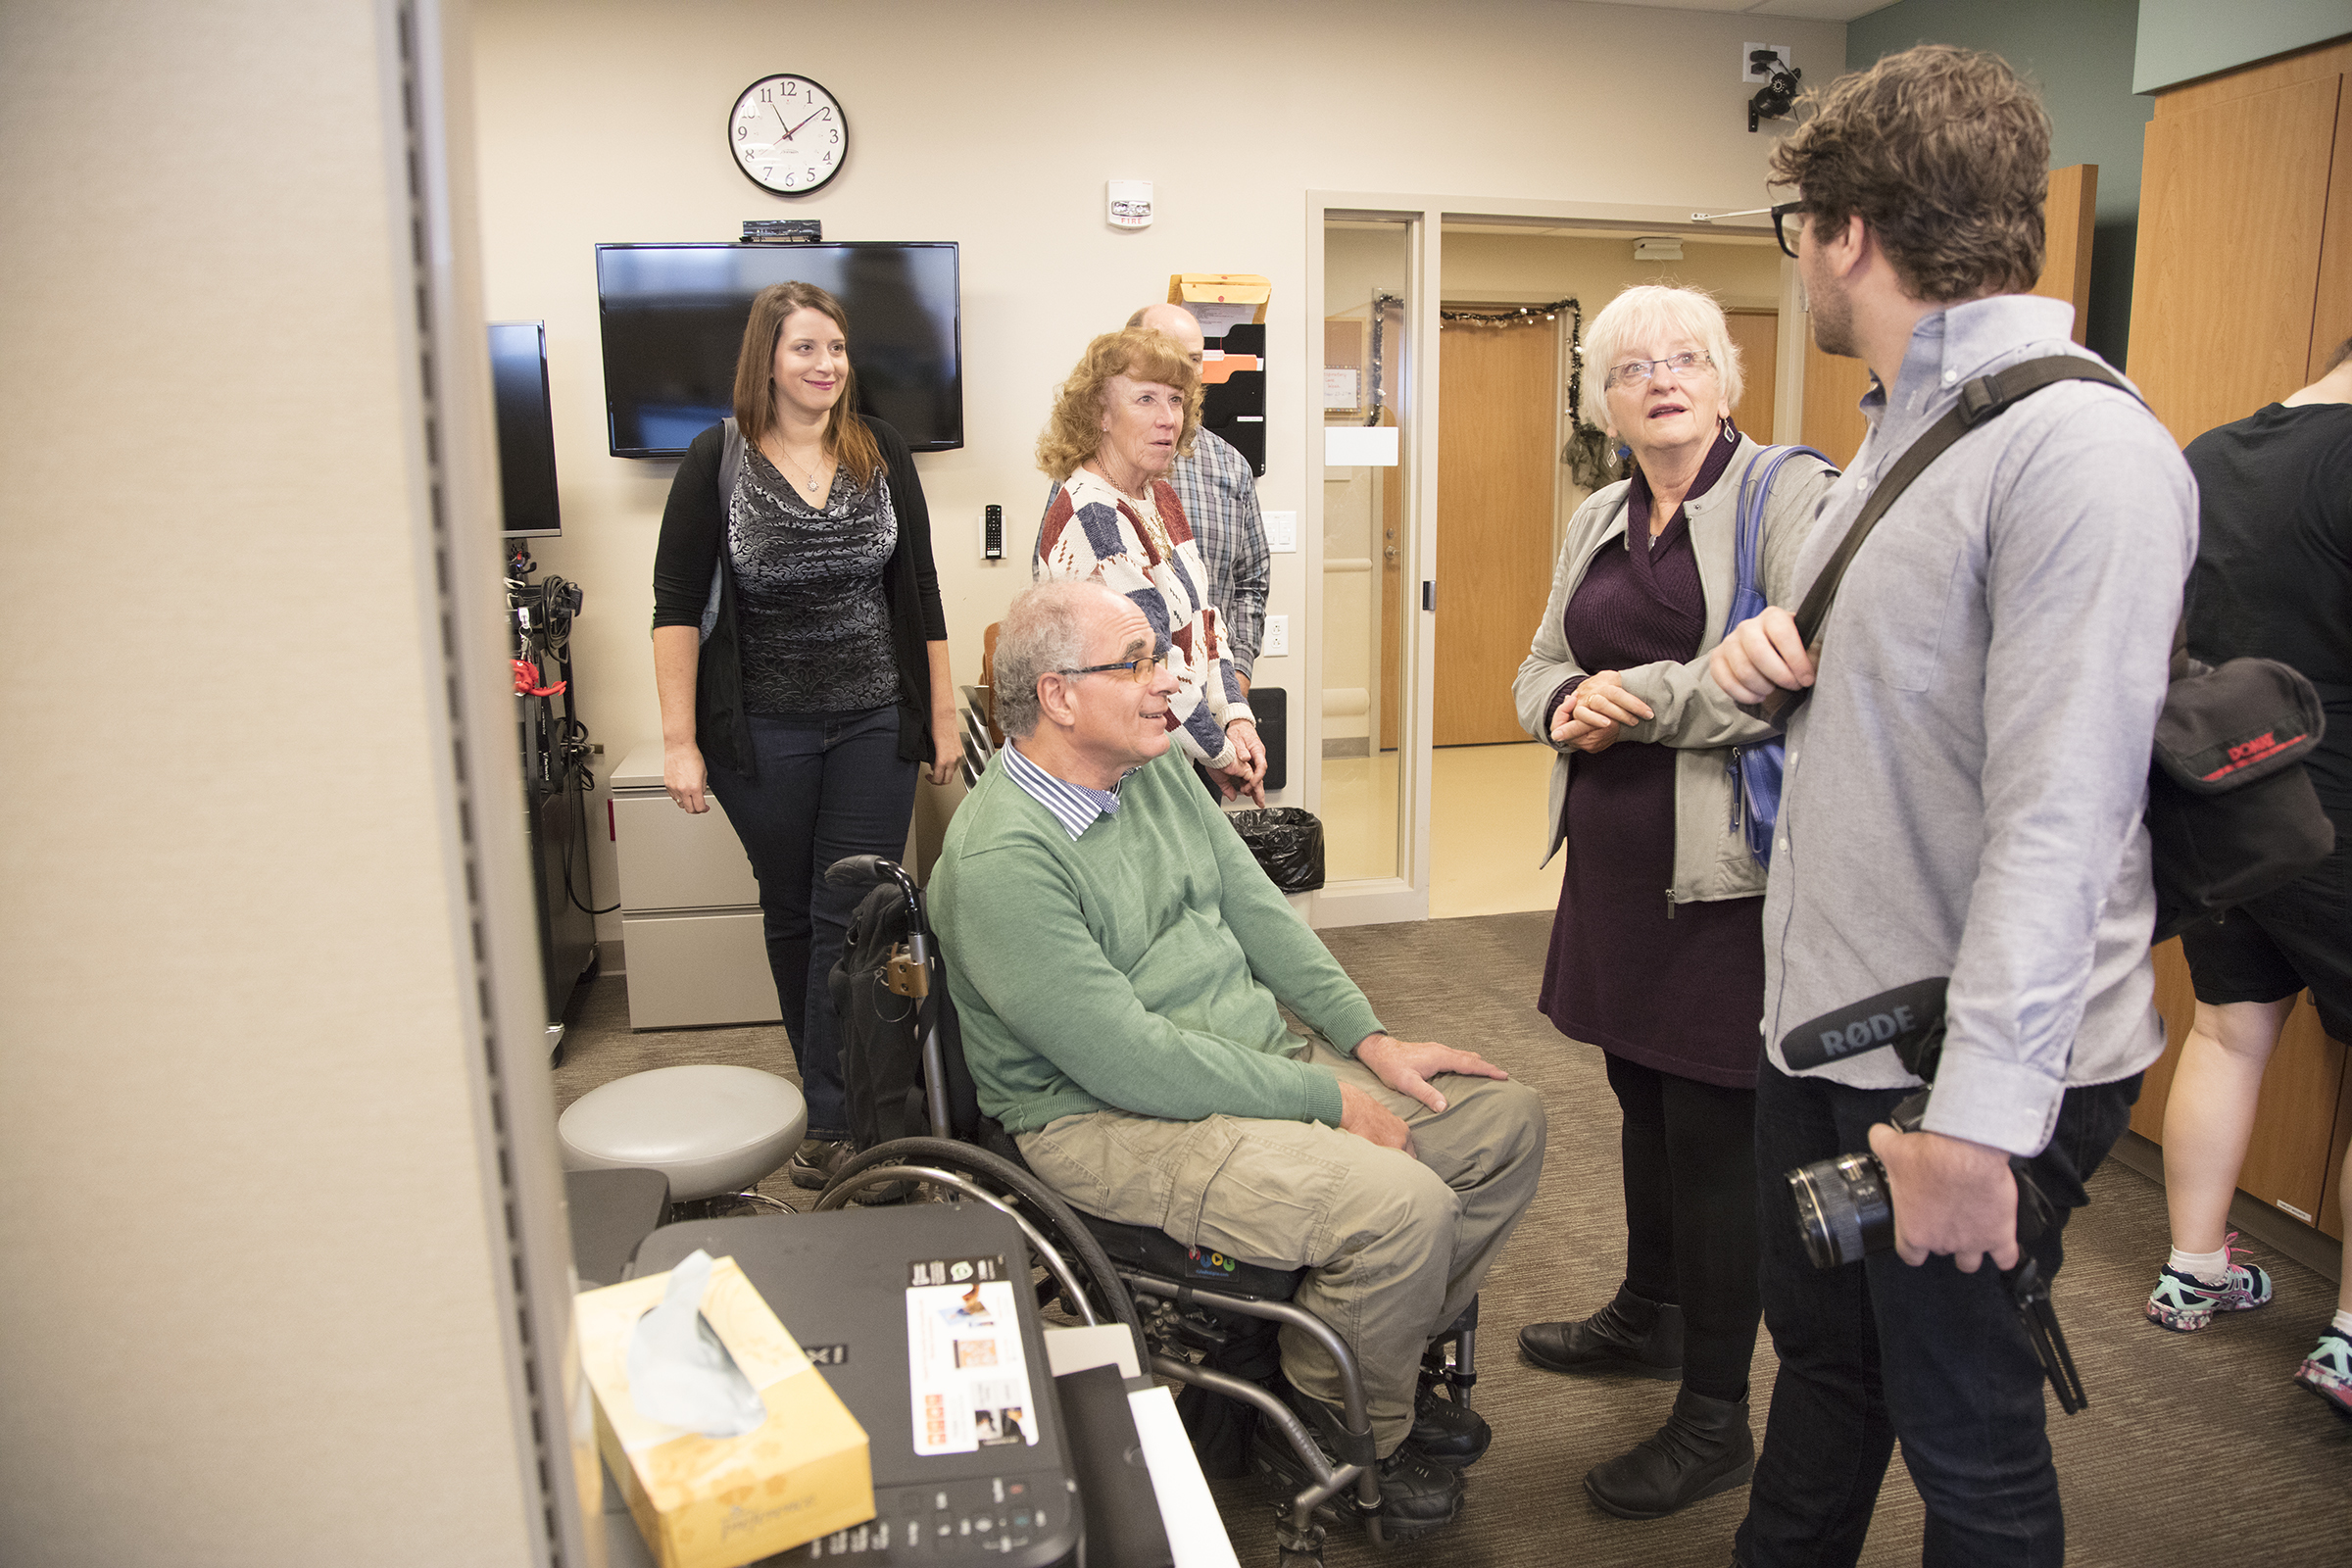 Former Craig Hospital spinal cord injury and traumatic brain injury patient, Jim Penta, visits with Craig team on Wish of a Lifetime visit